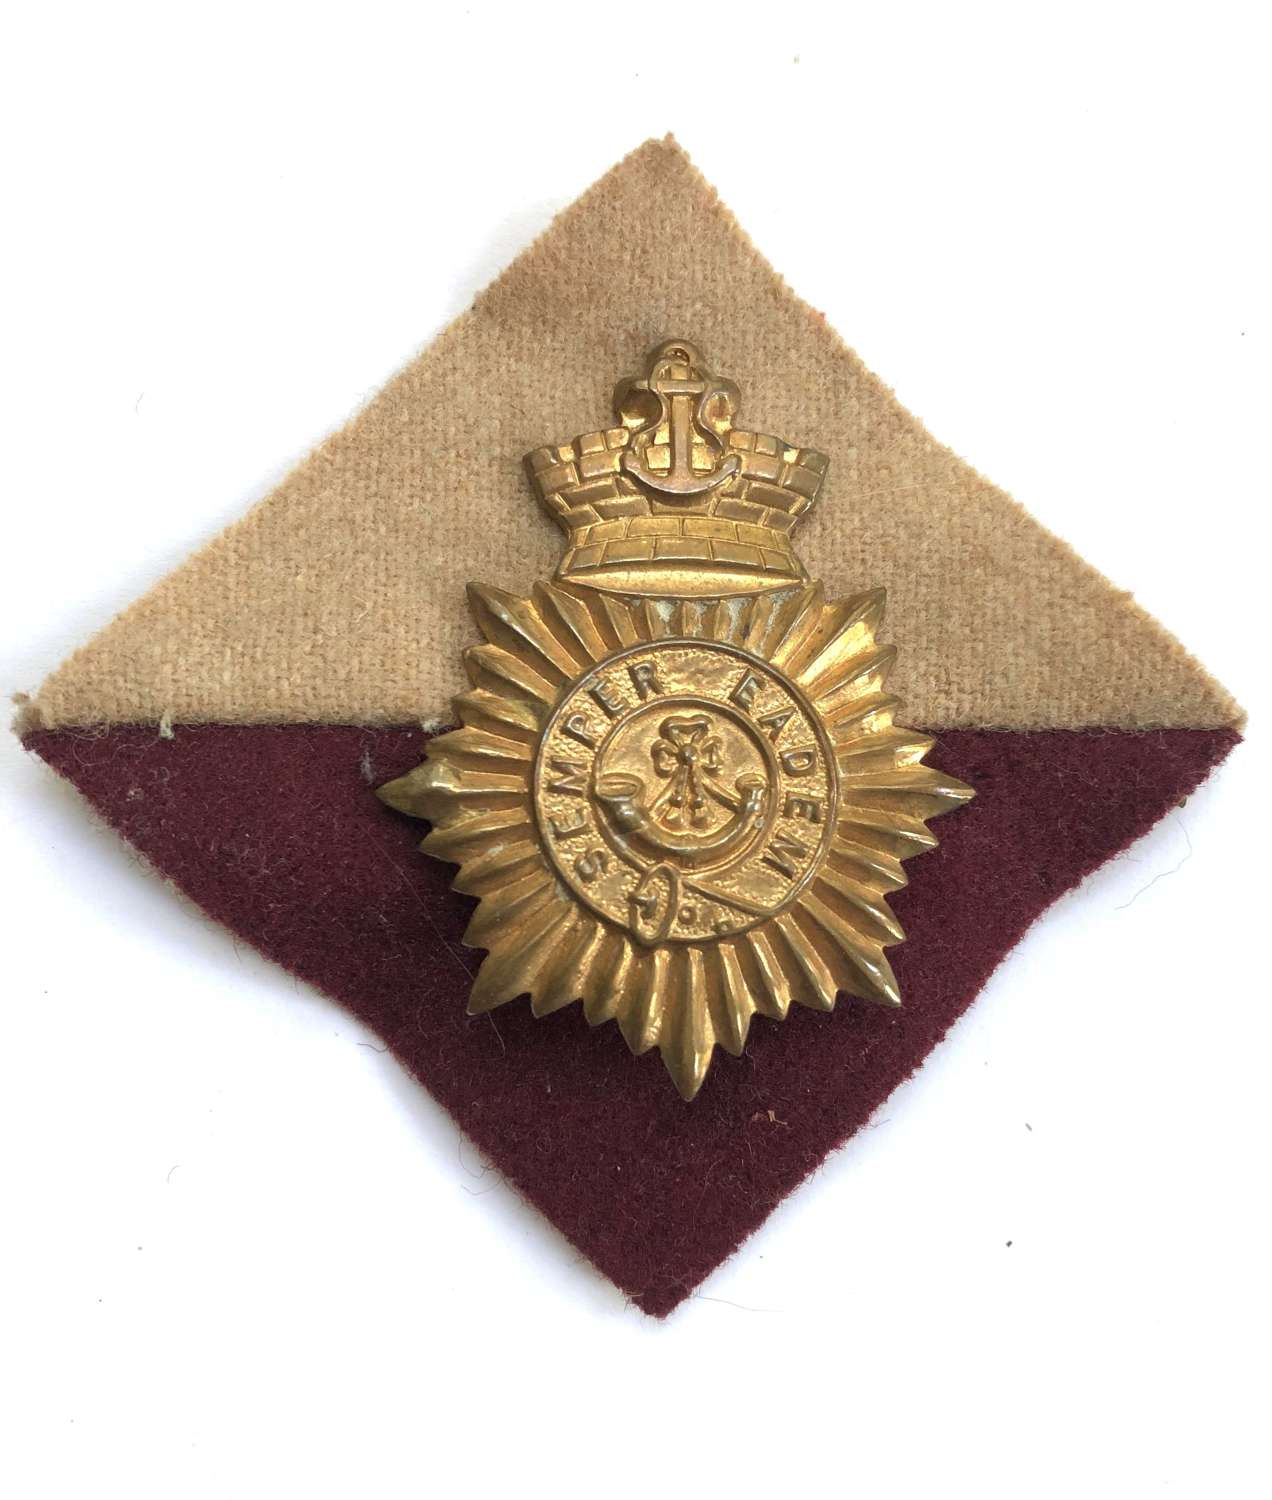 South African Cape Town Rifles badge on pagri flash